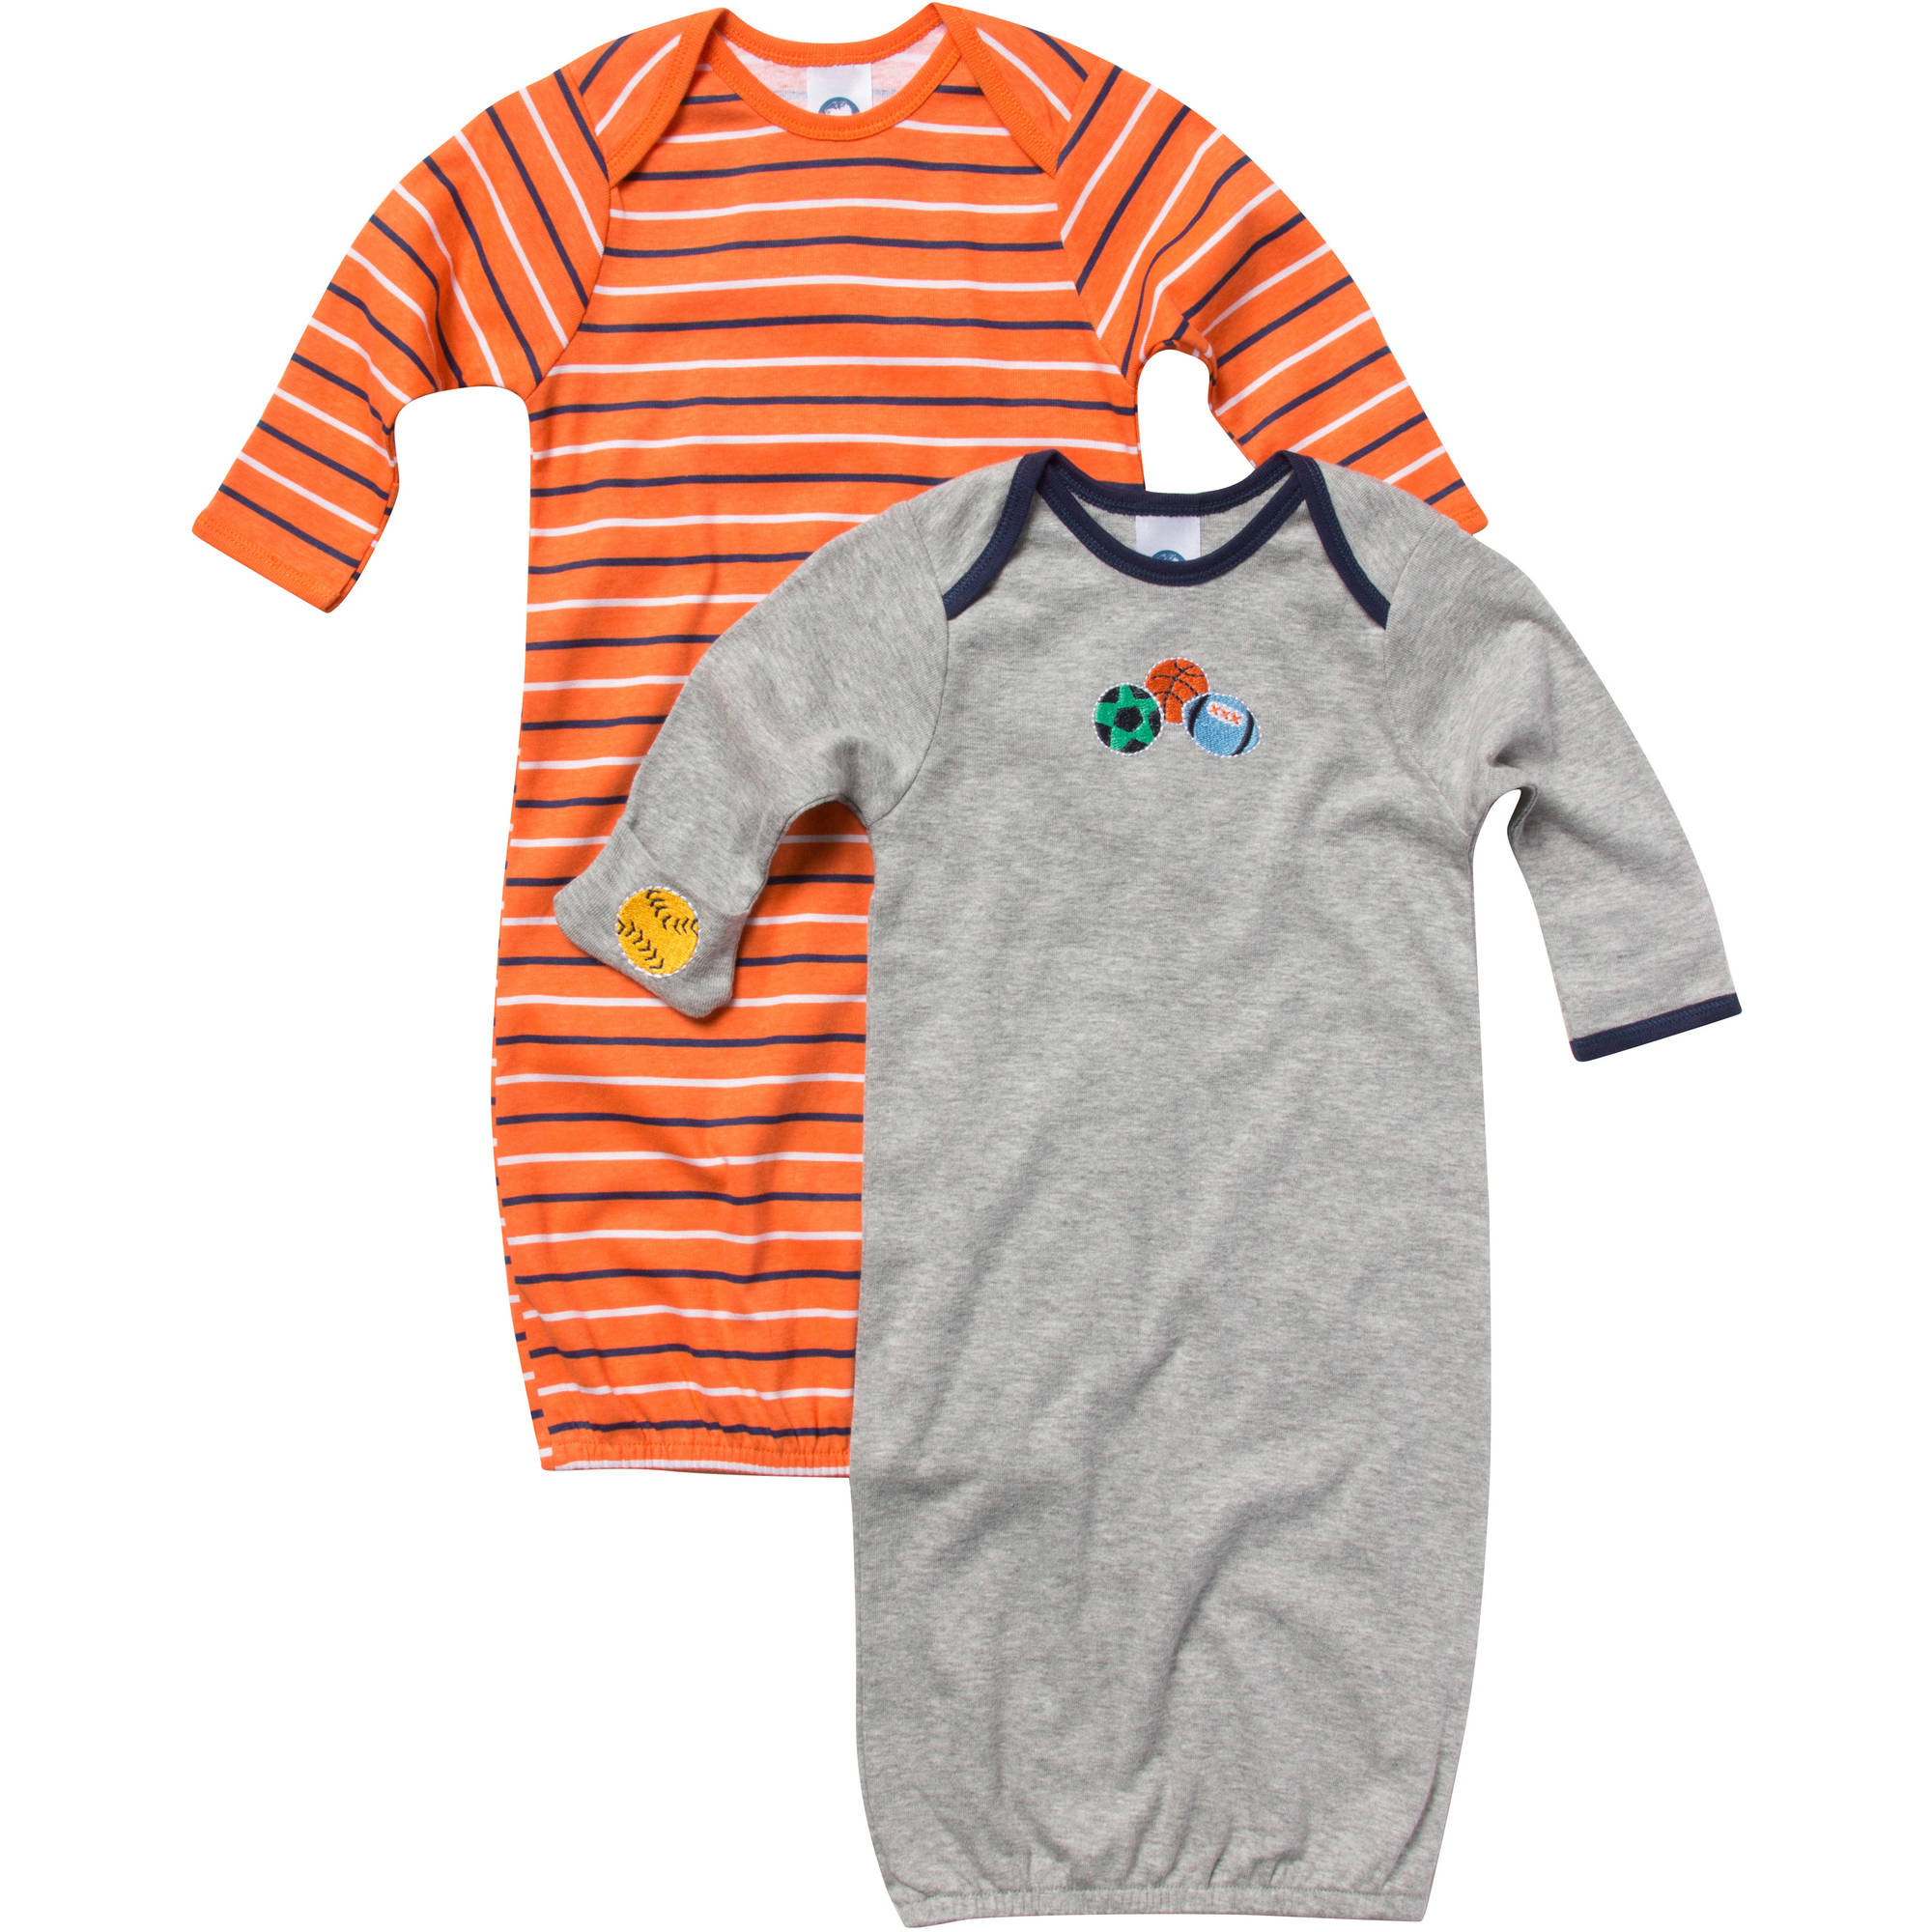 Gerber Newborn Baby Boy Sport Lap Shoulder Gown - 2 Pack